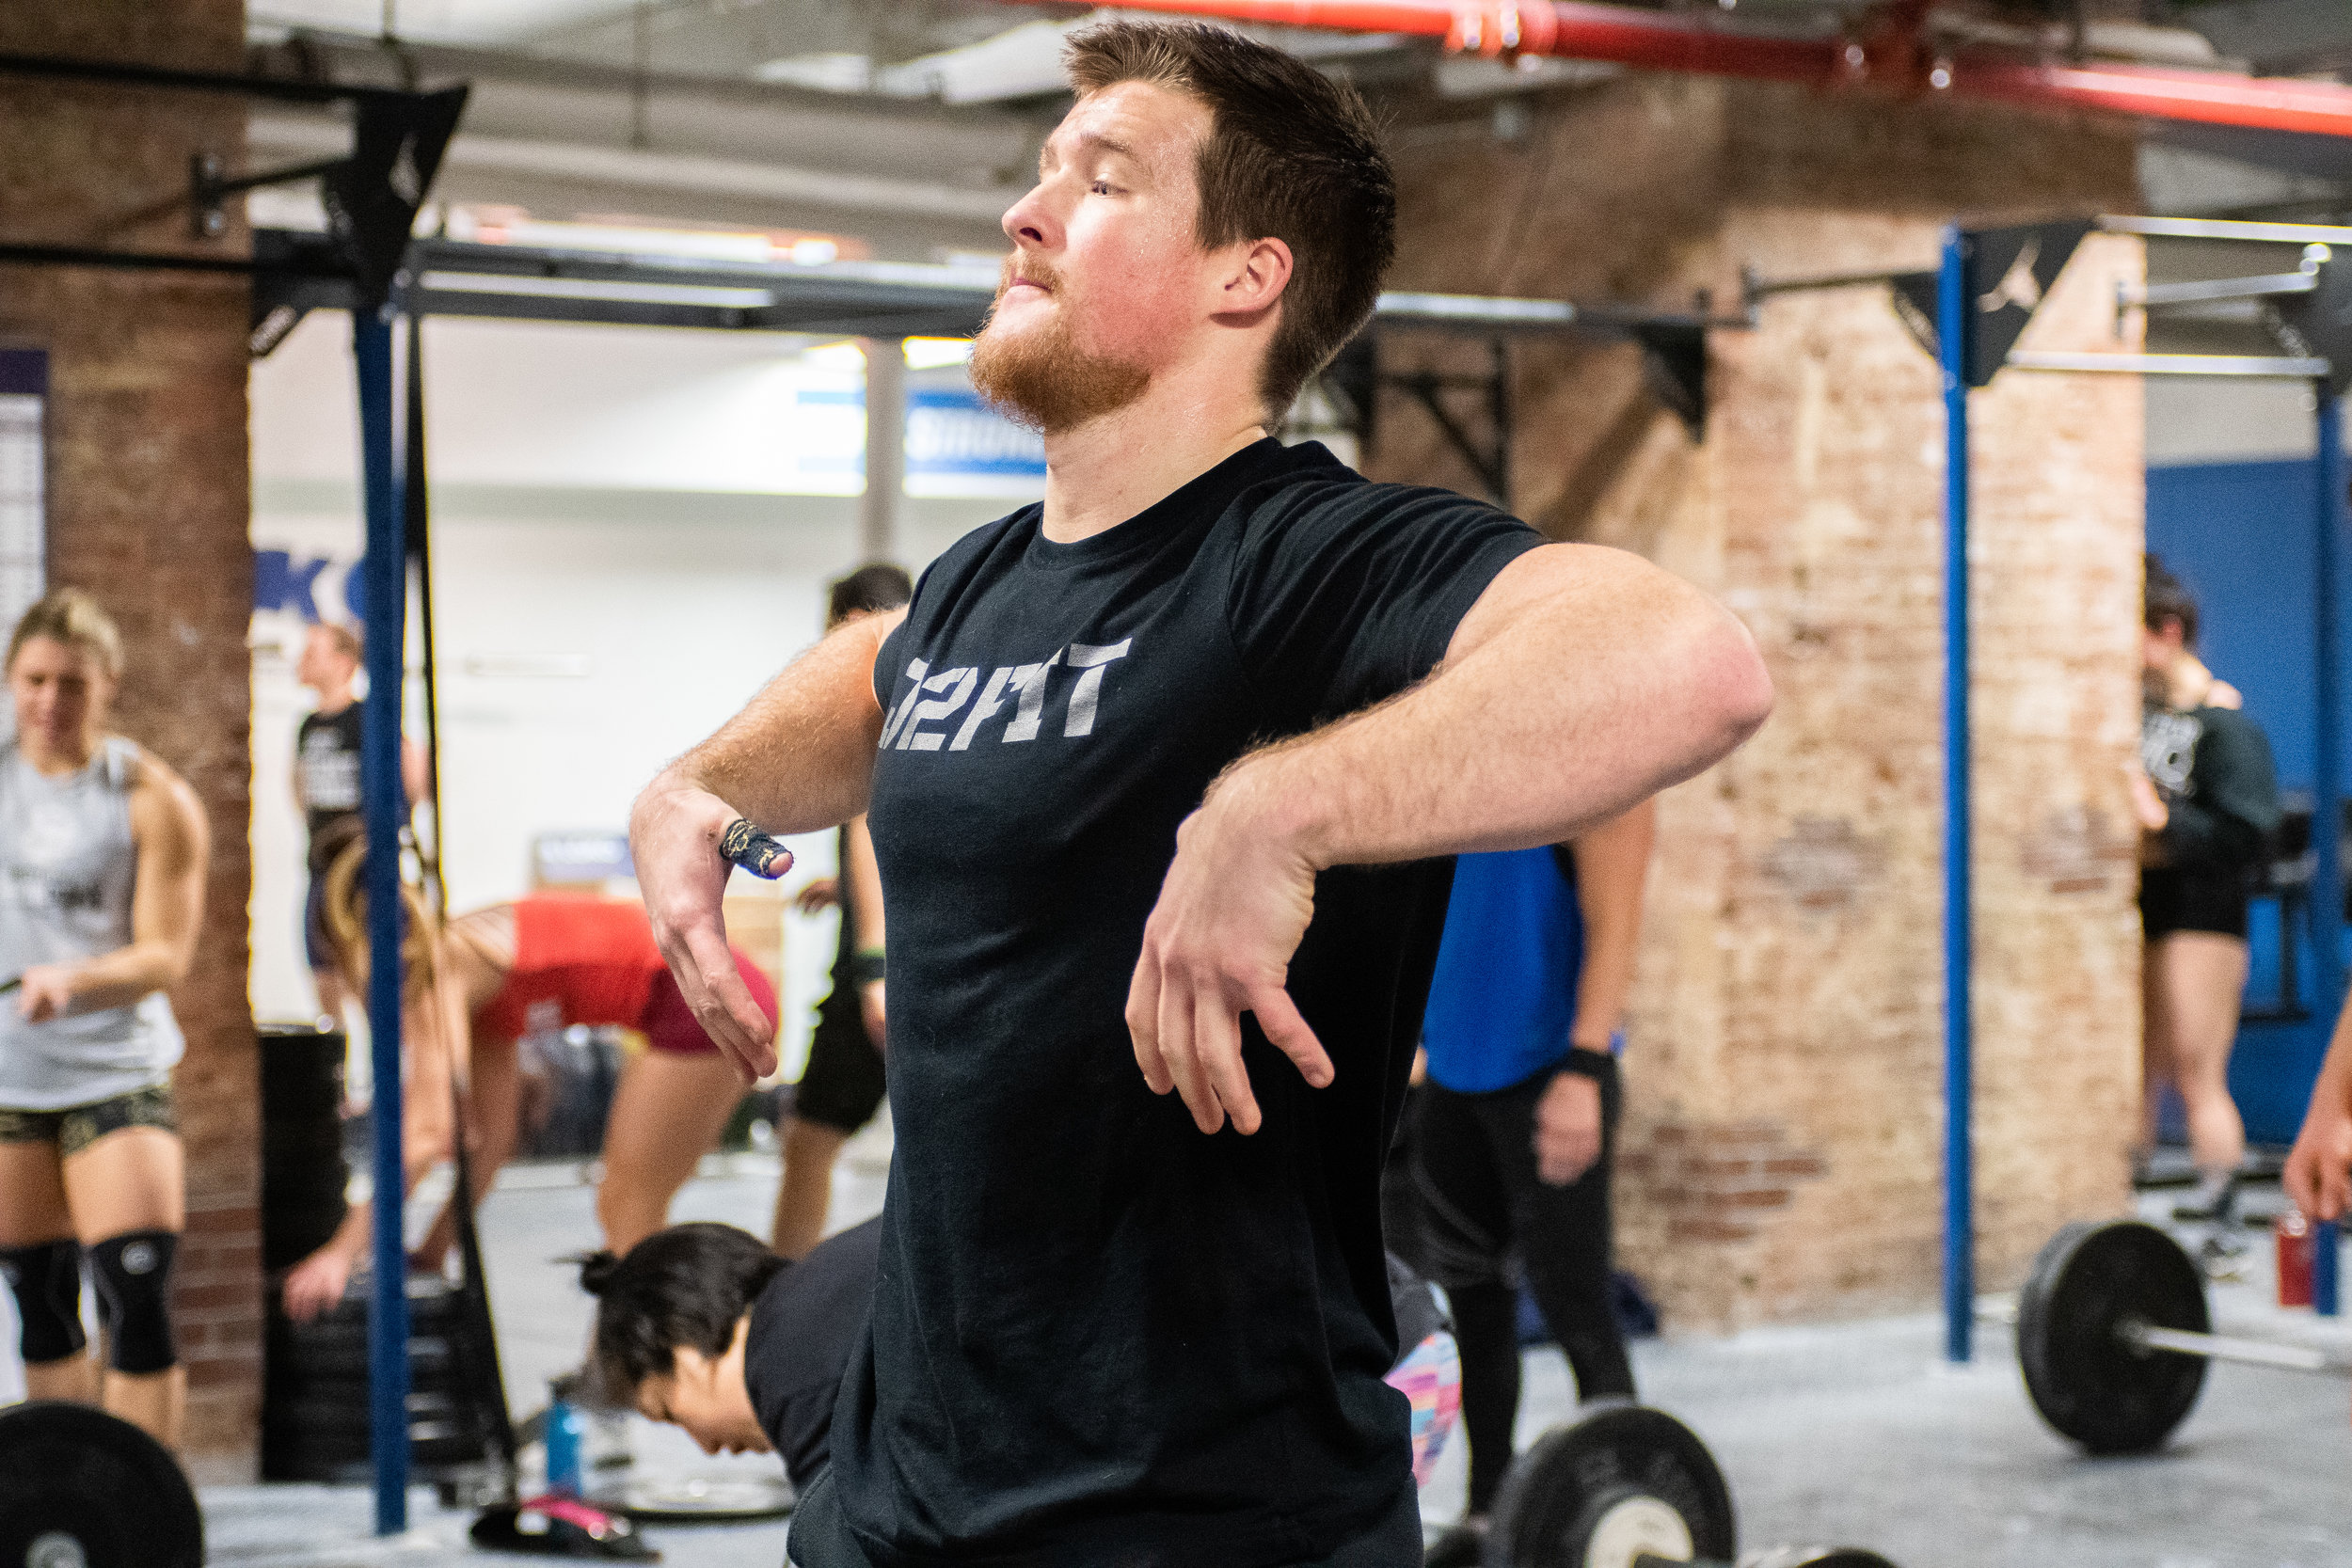 Cincinnati Personal Training and Weightlifting Club — J2FIT